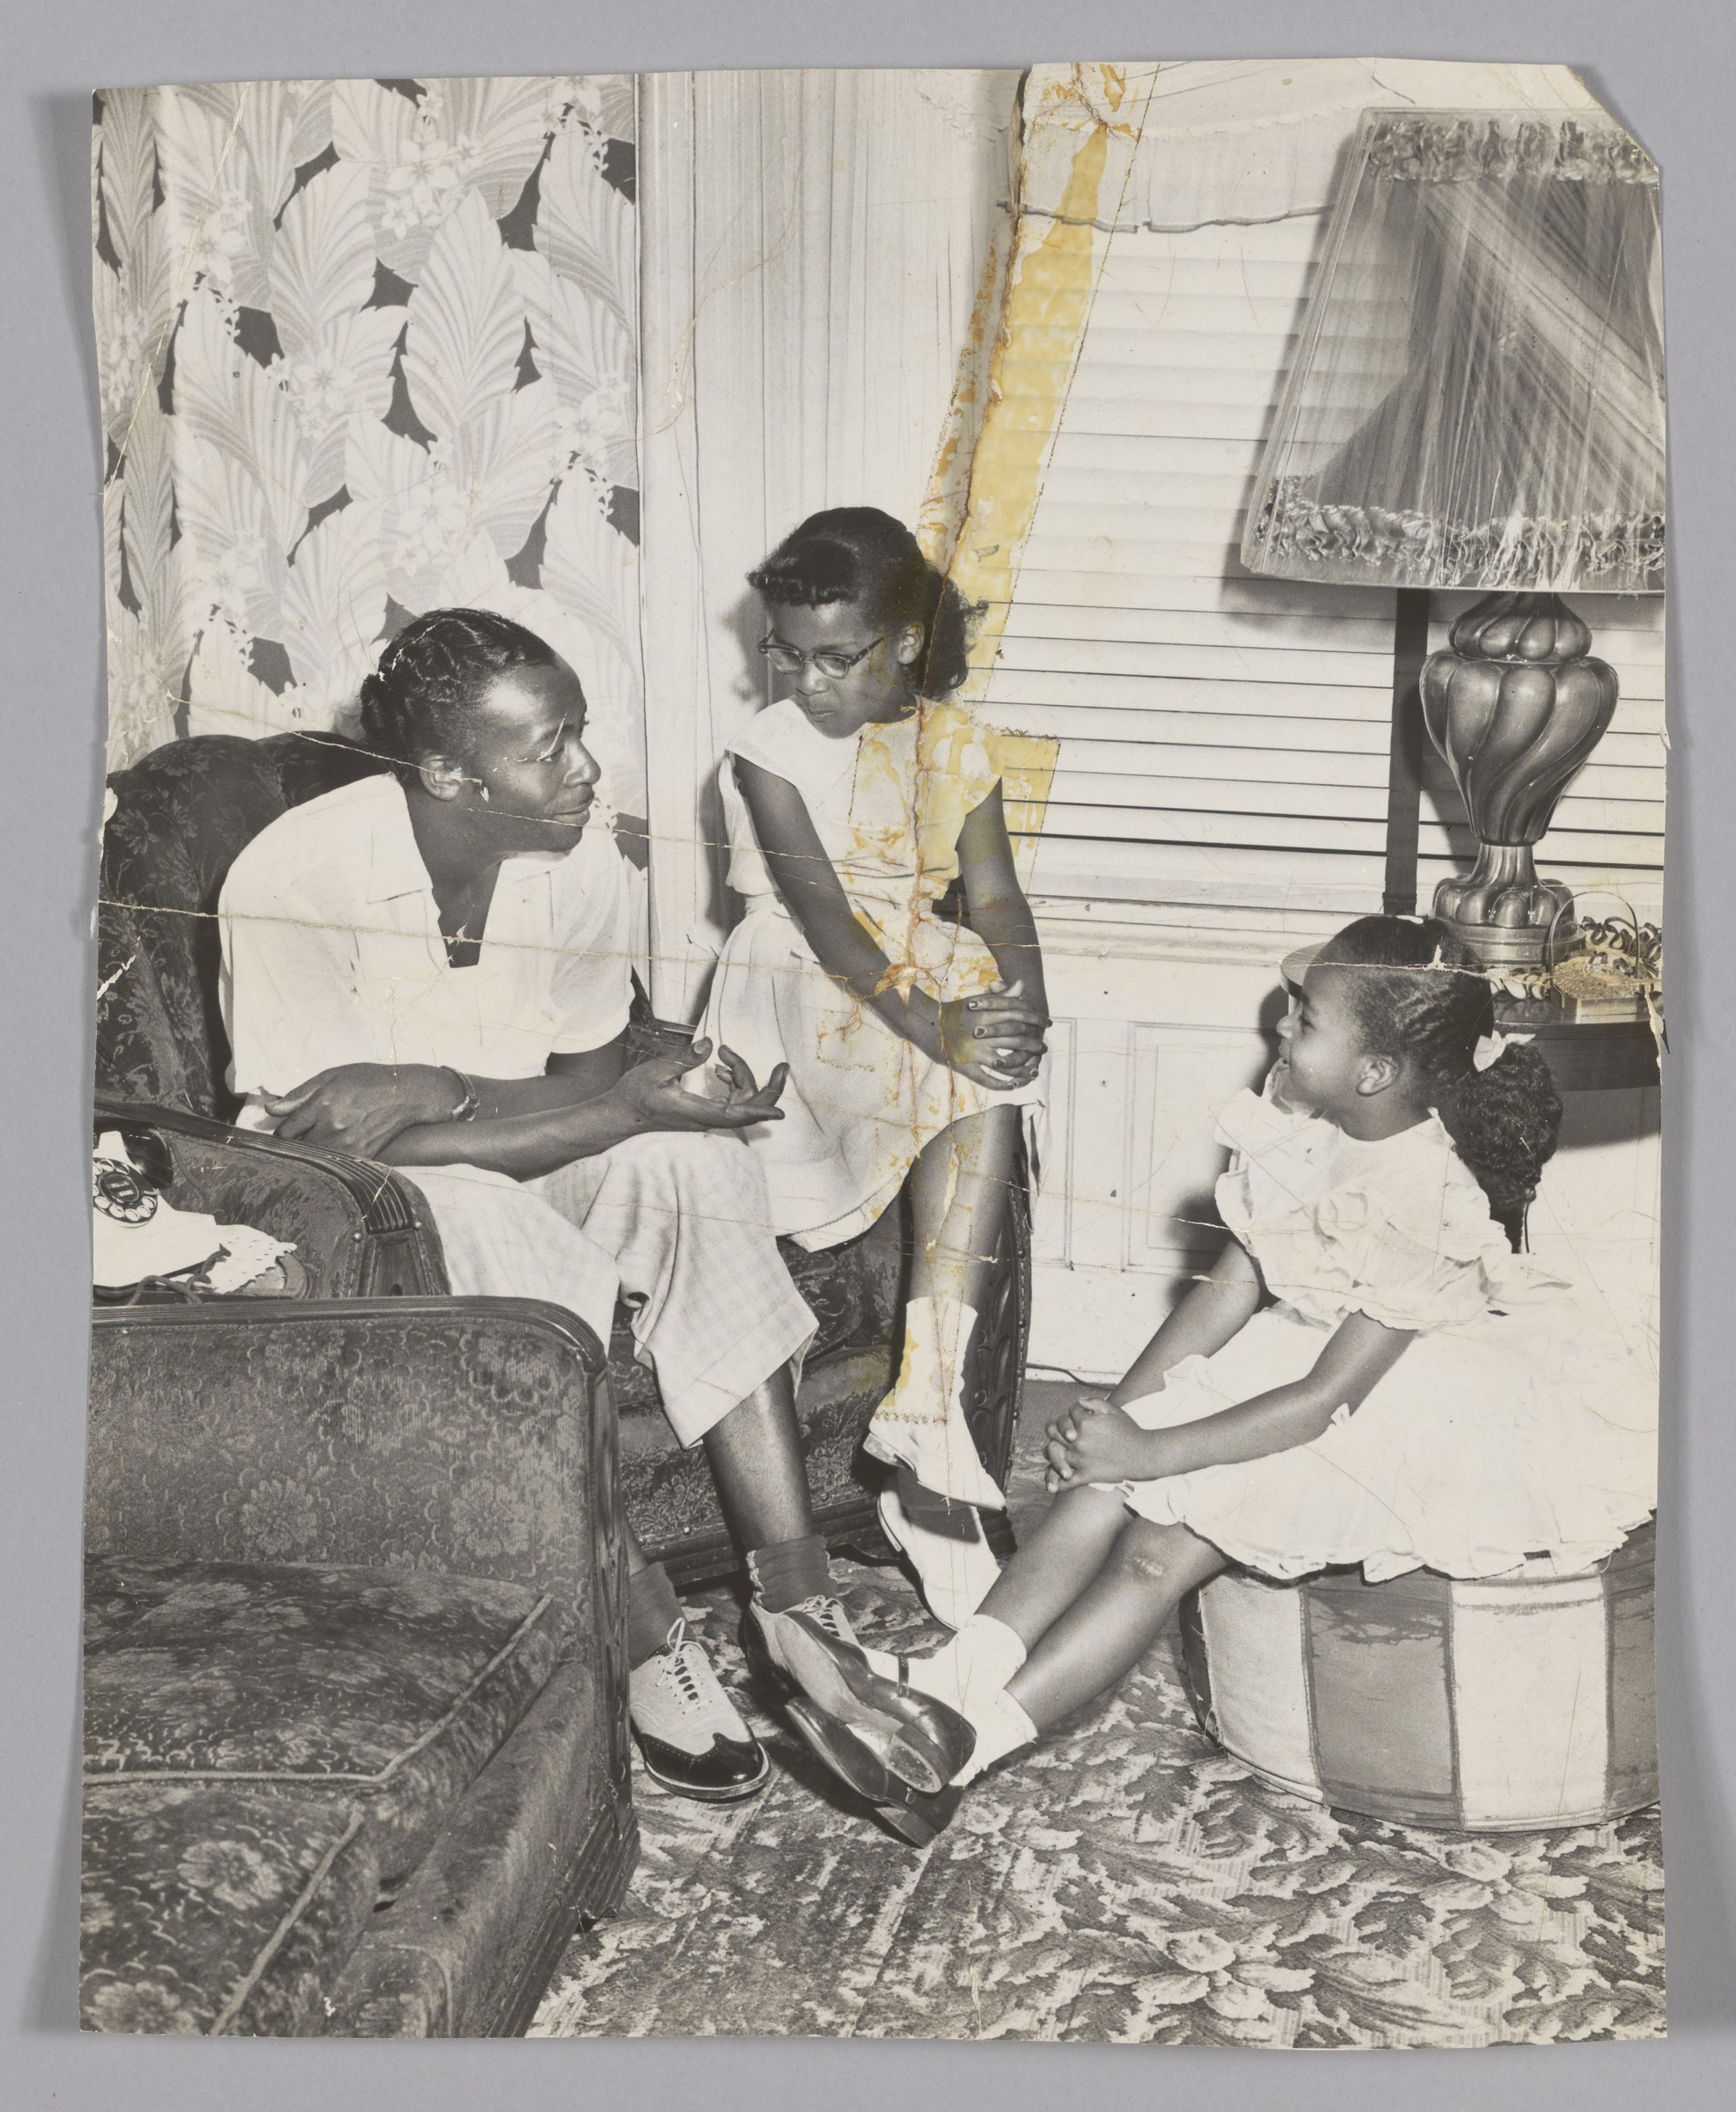 A man and two girls are seated in a living room. He is speaking to them.